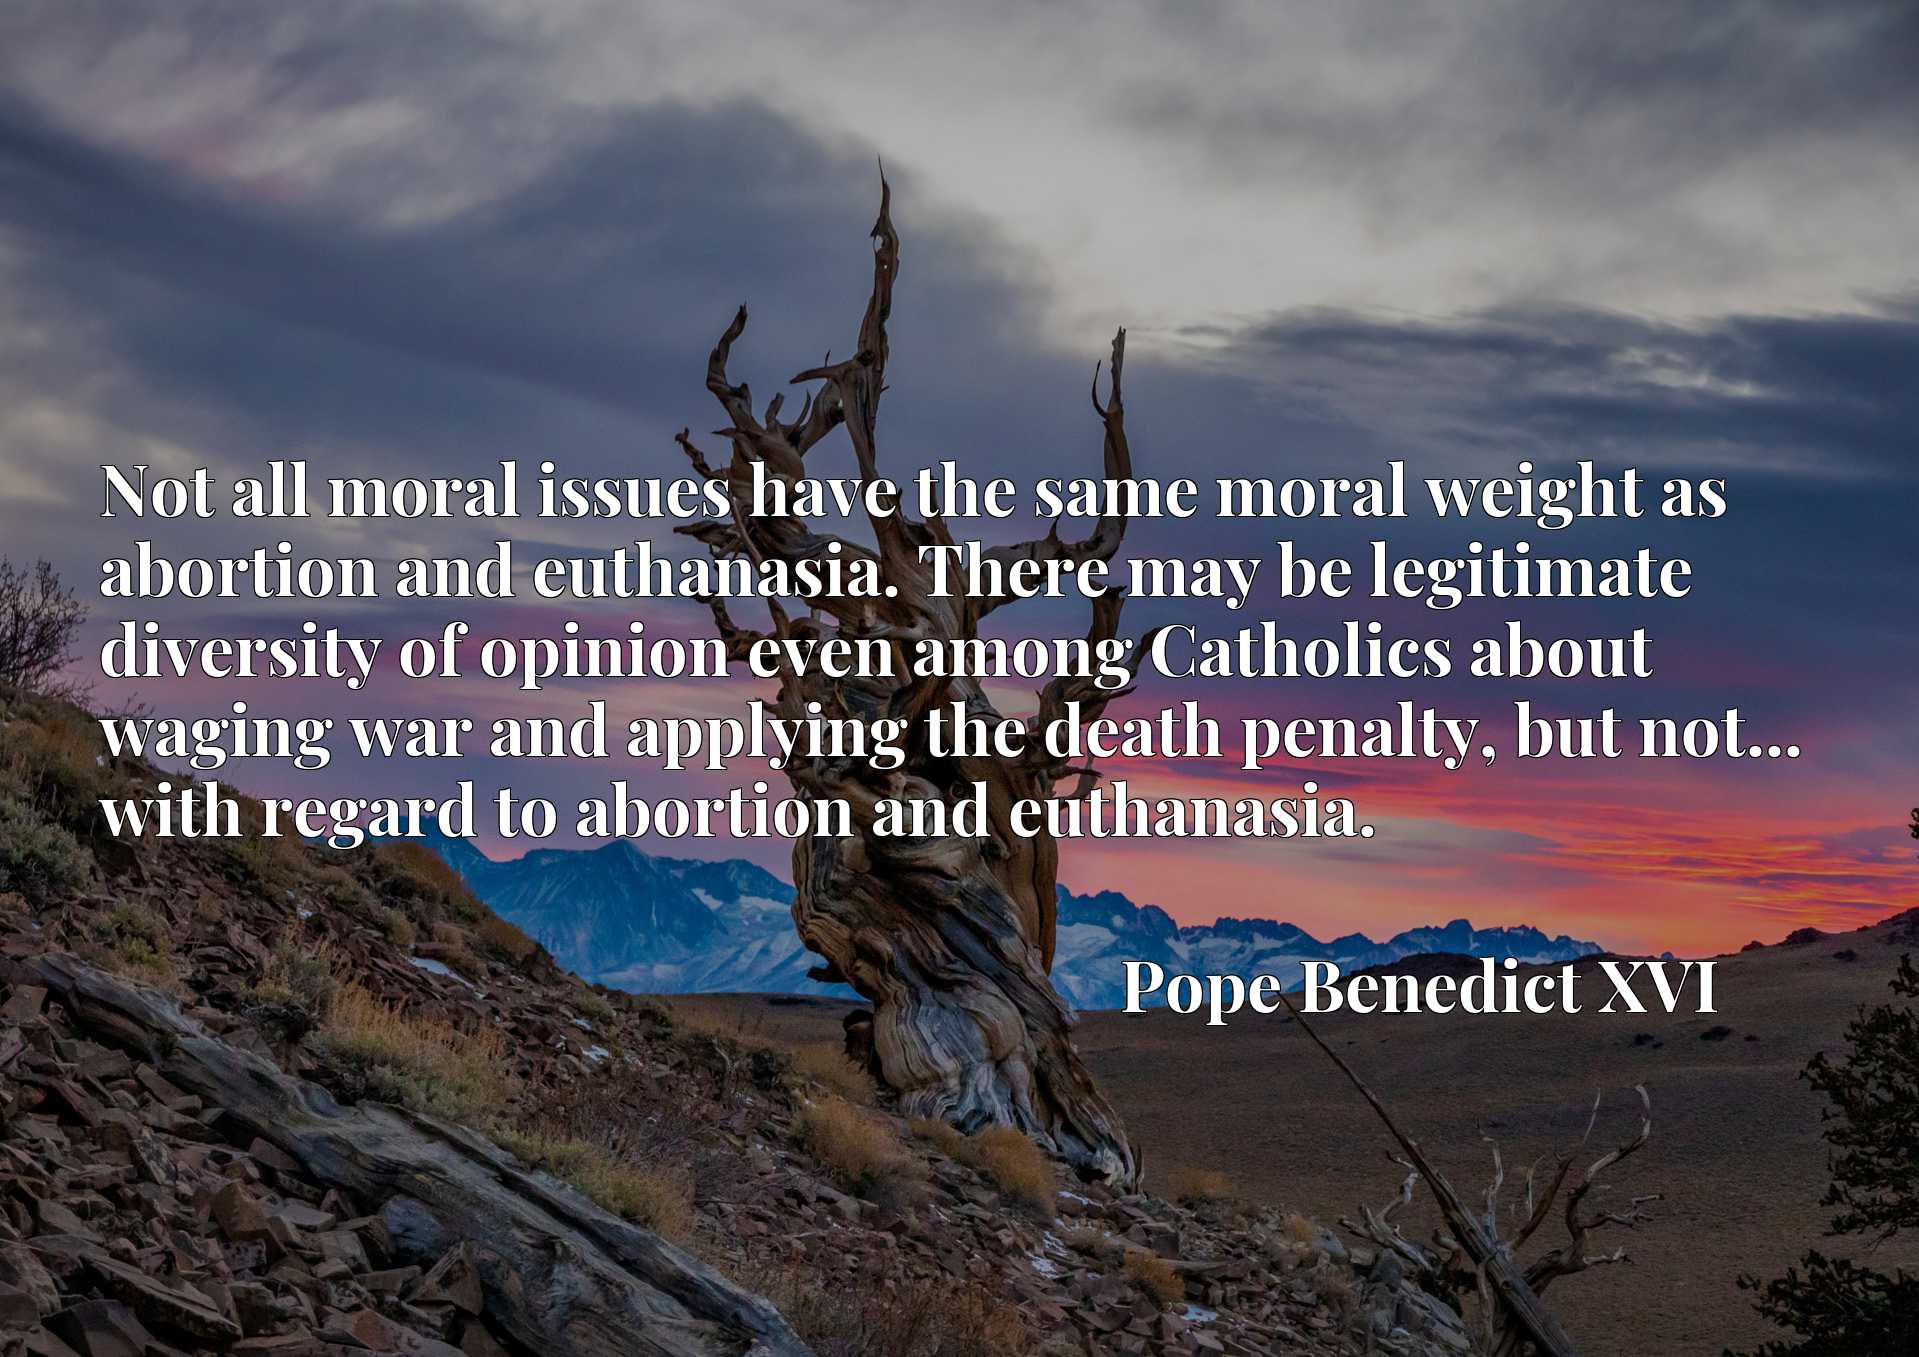 Not all moral issues have the same moral weight as abortion and euthanasia. There may be legitimate diversity of opinion even among Catholics about waging war and applying the death penalty, but not... with regard to abortion and euthanasia.